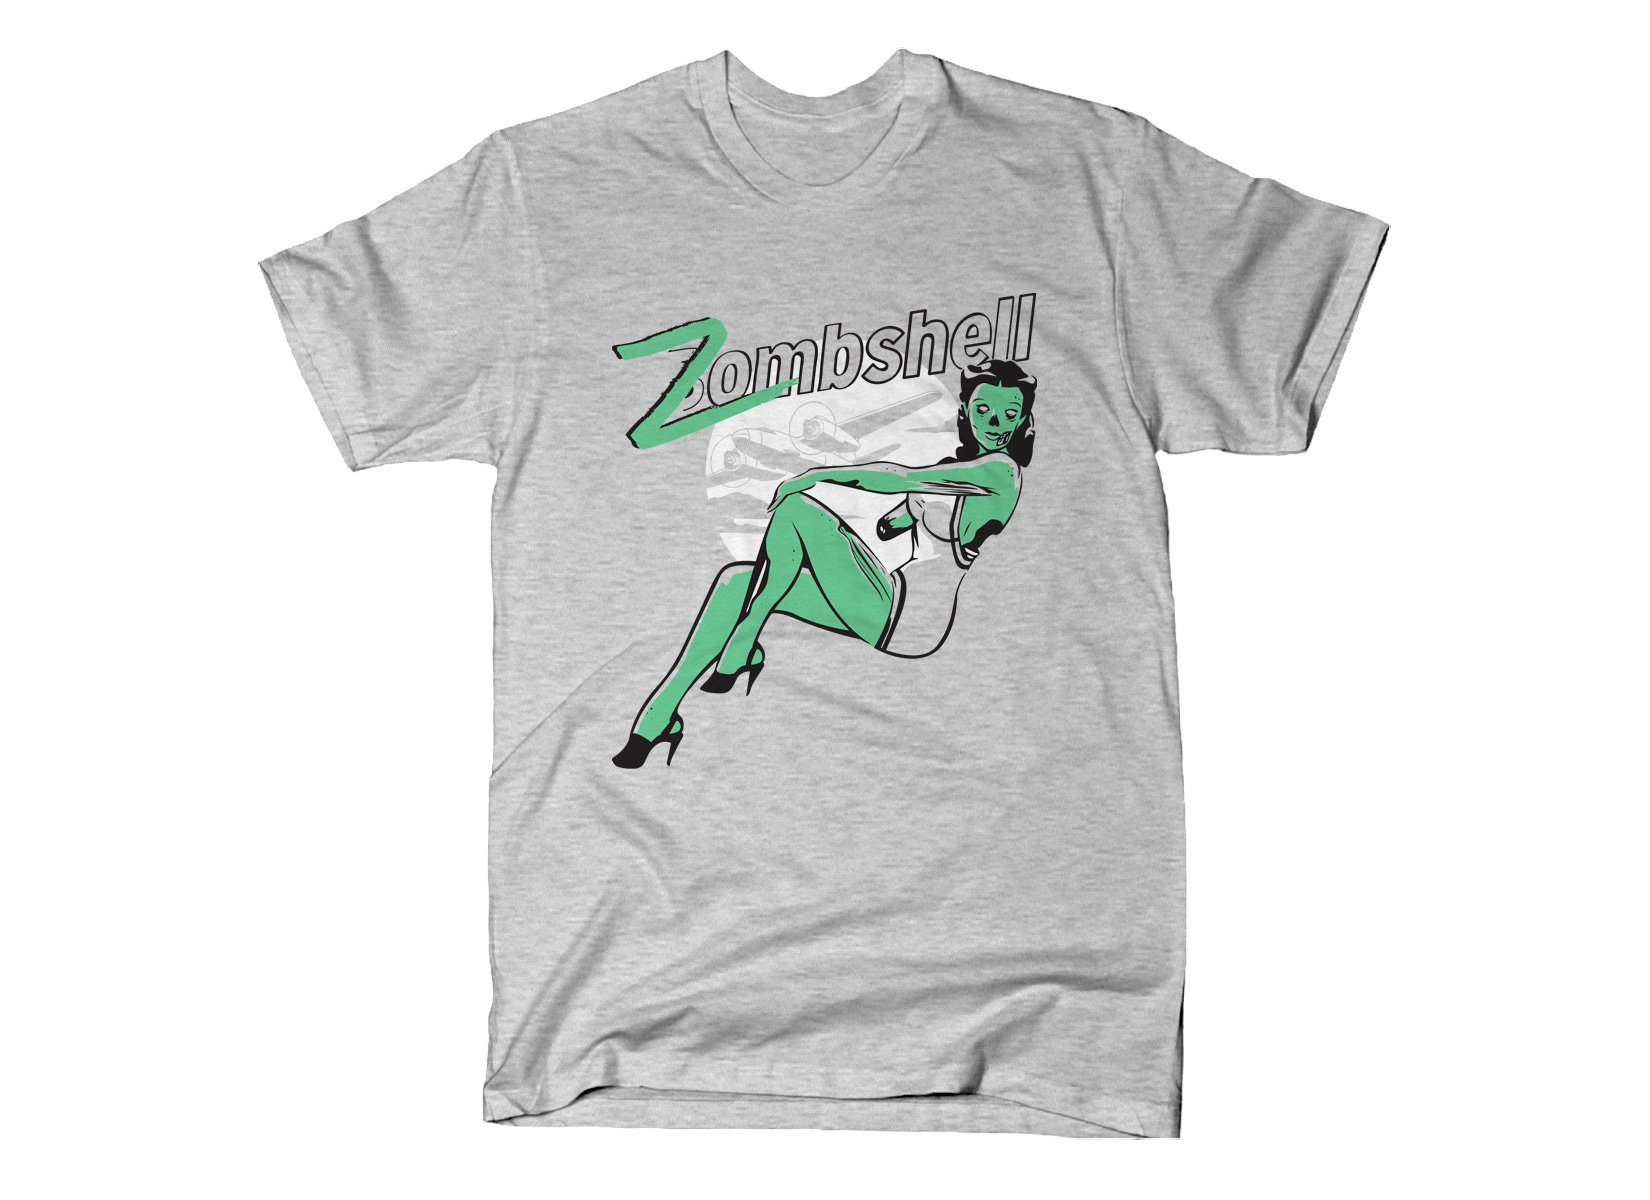 Zombshell on Mens T-Shirt